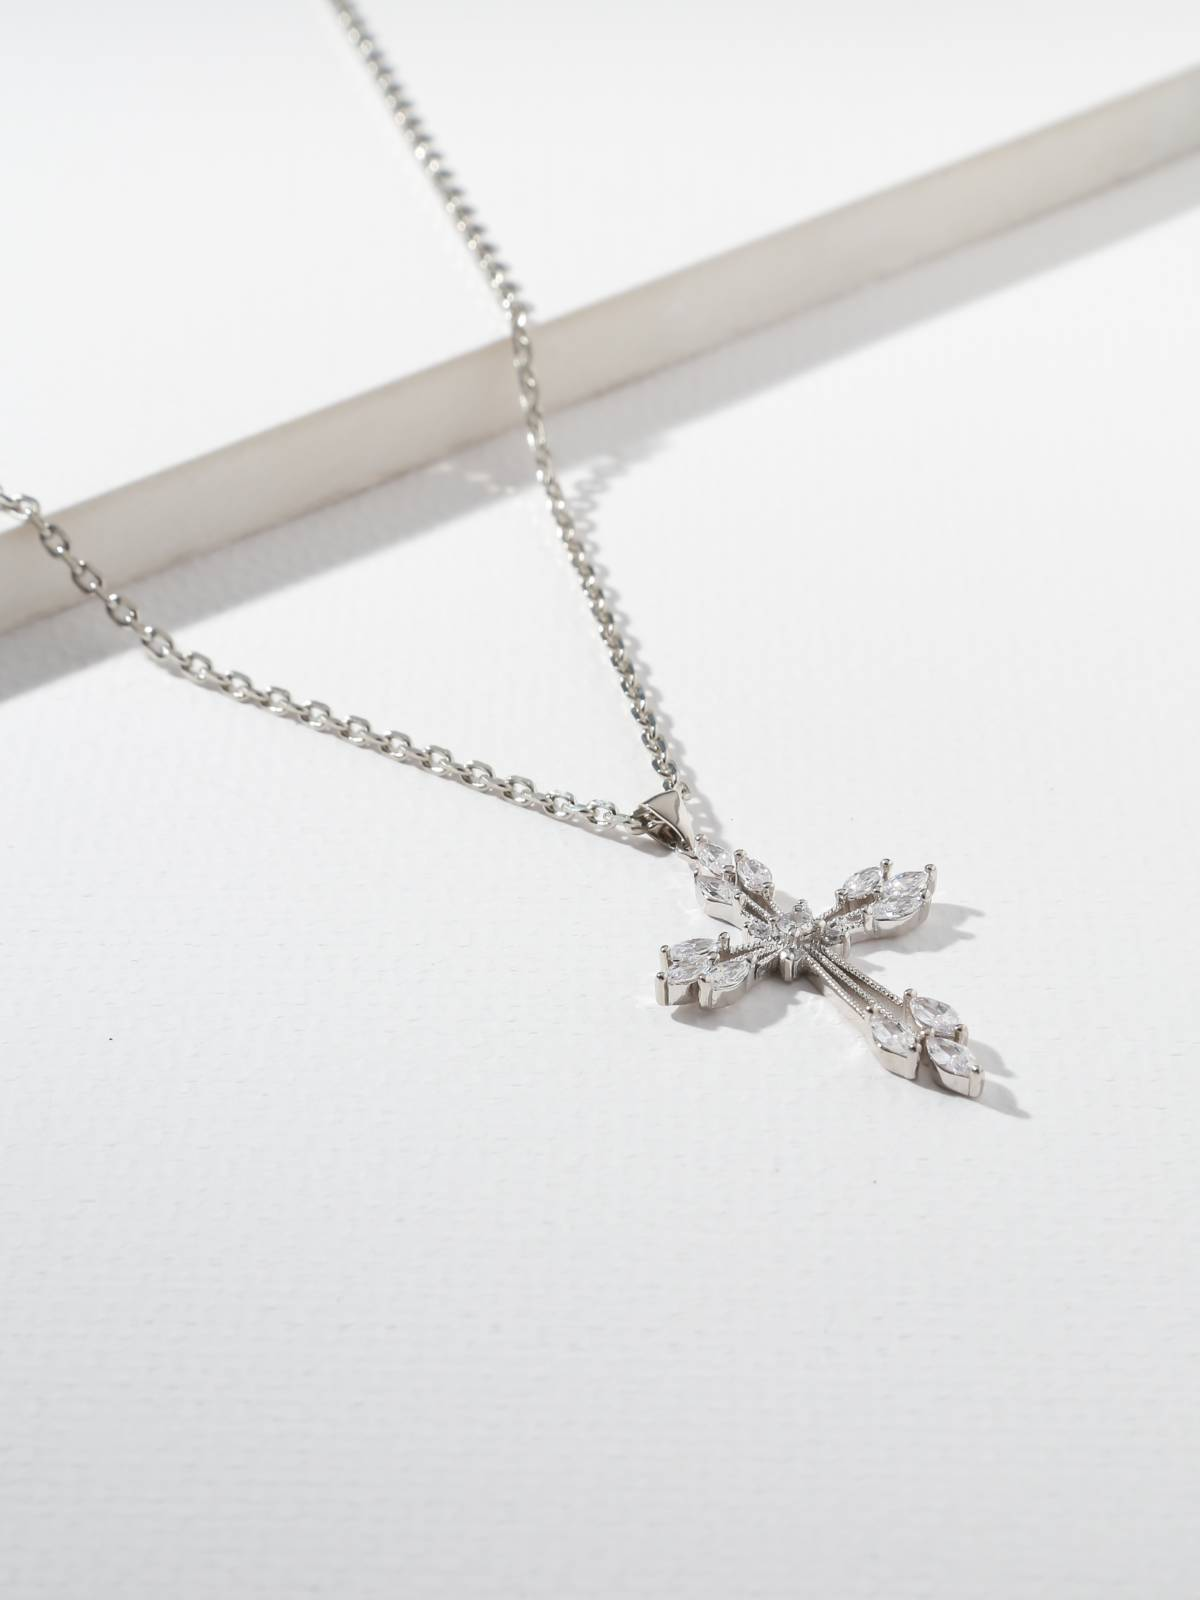 The Holy Cross Necklace